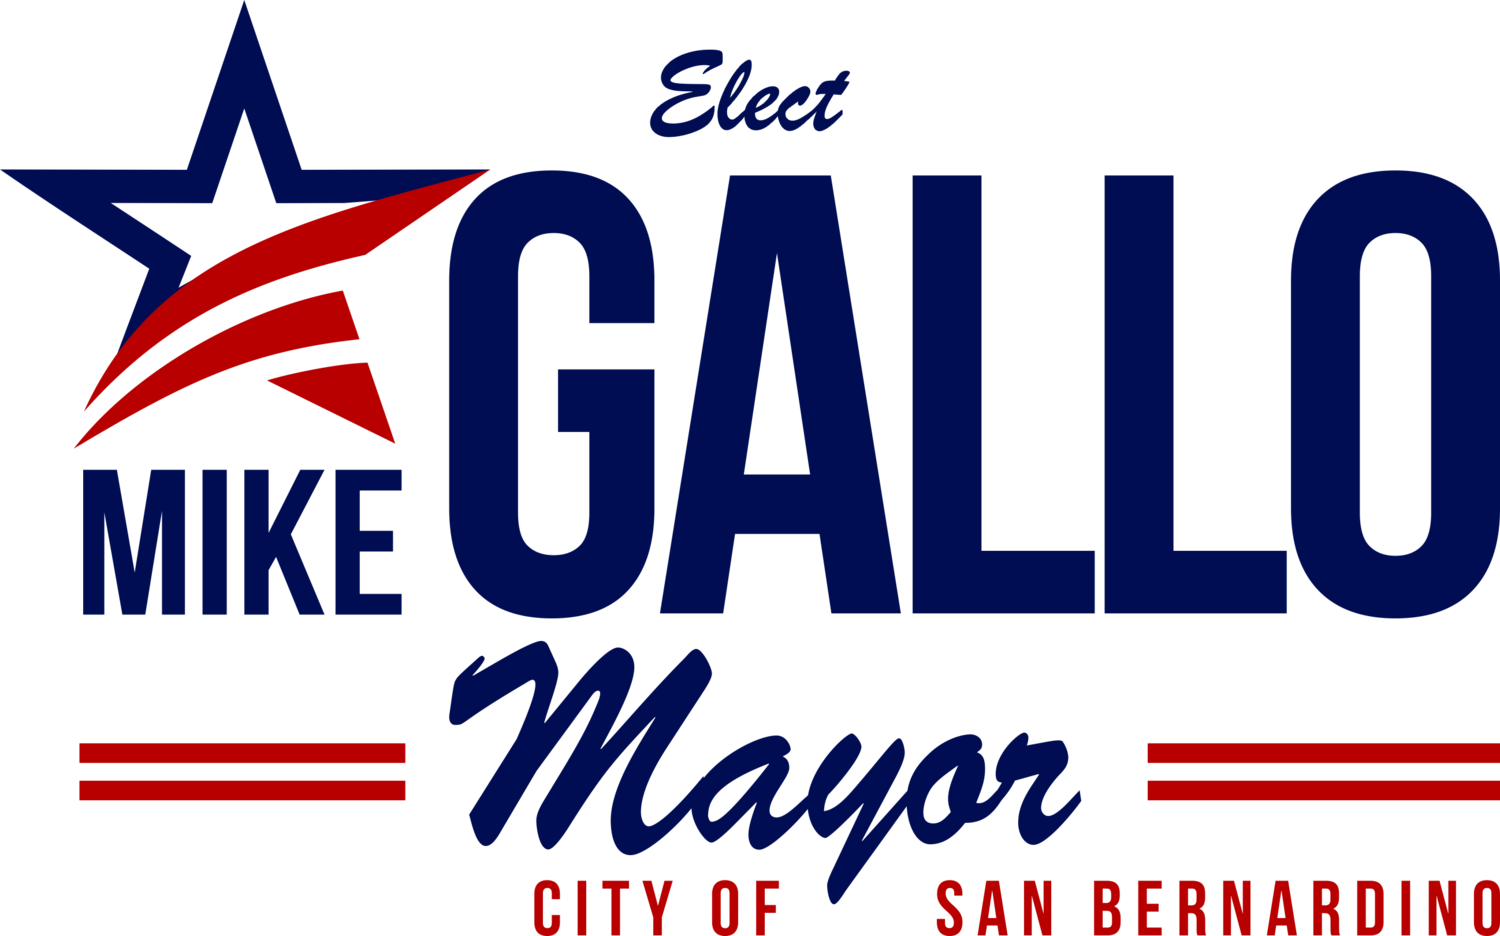 Mike Gallo 4 Mayor